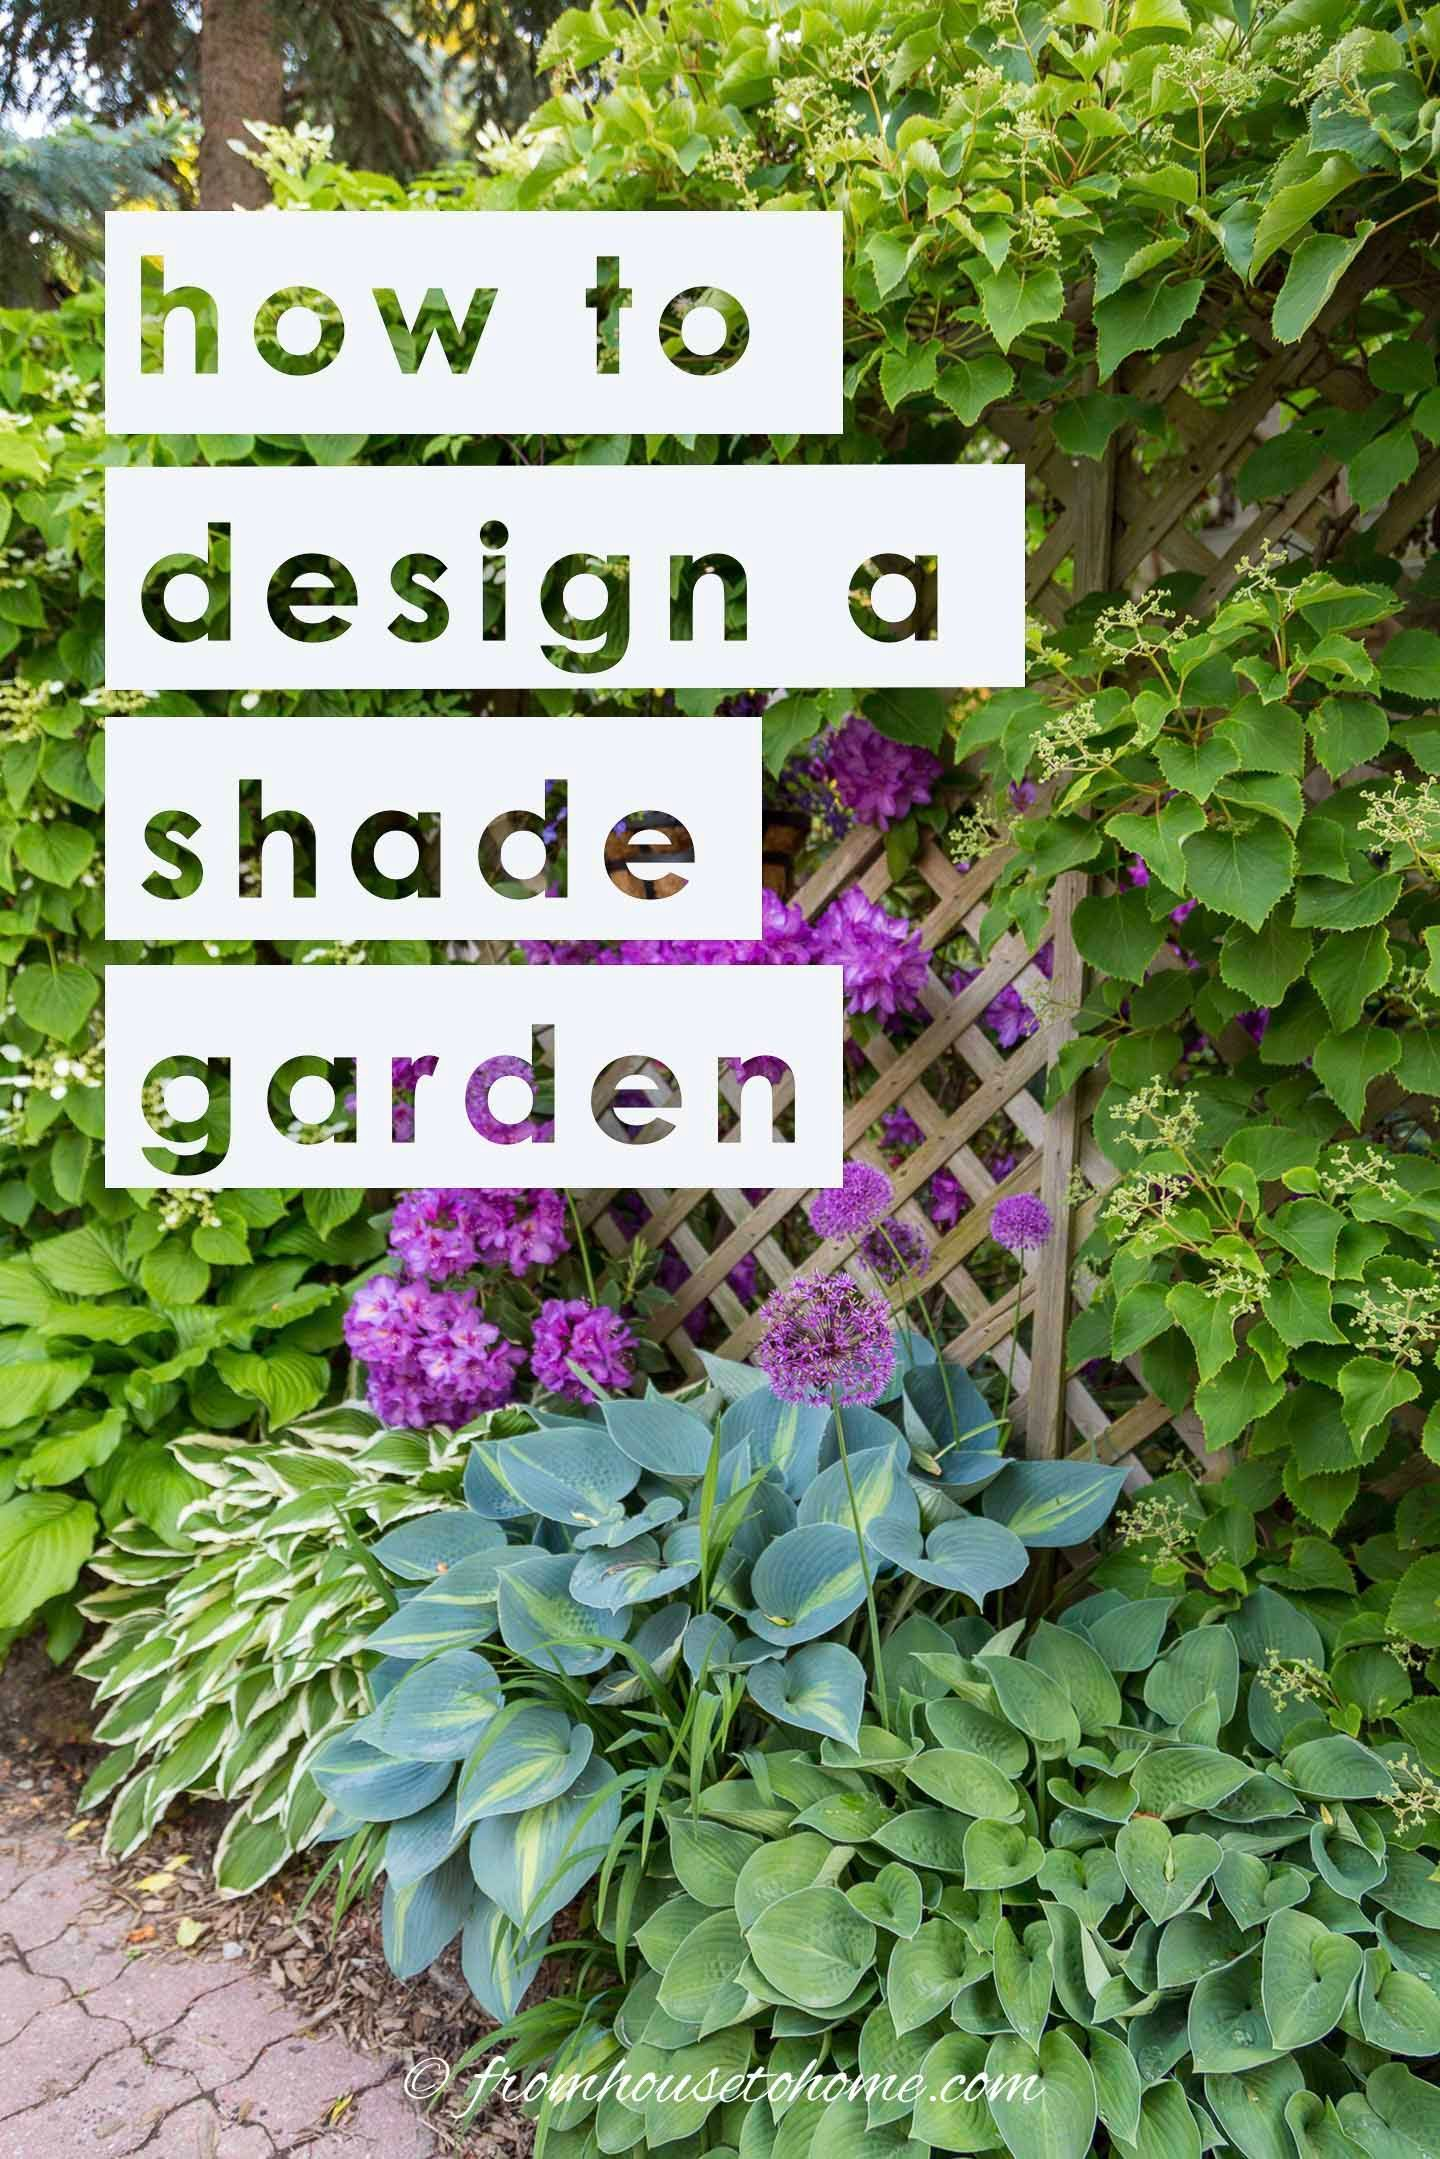 How To Design A Stunning Shade Garden (With Pictures) - Gardening @ From House To Home -   16 garden design Inspiration building ideas